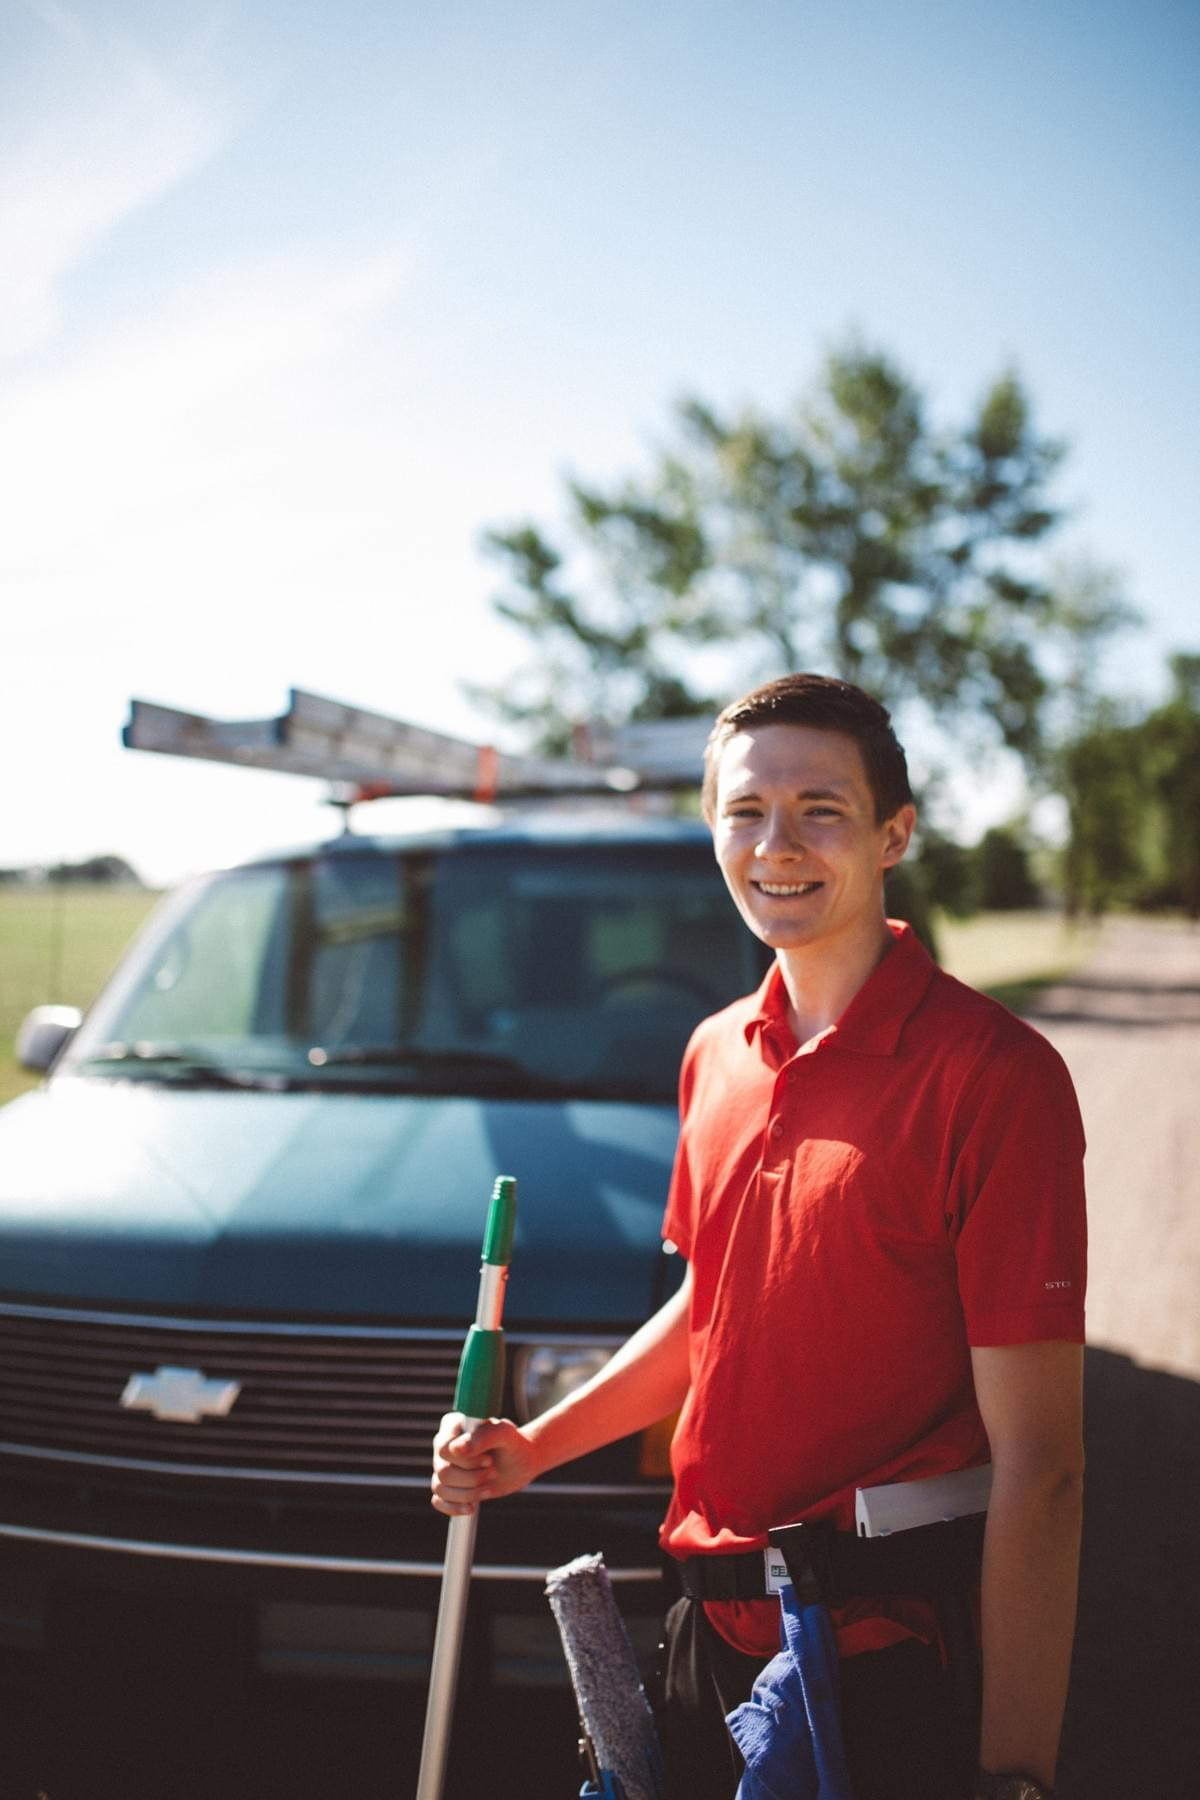 Ricky Feir with Window Cleaning Equipment, including a pole, scrubber, squeegee, and scraper in Moorhead by the Astro Van.